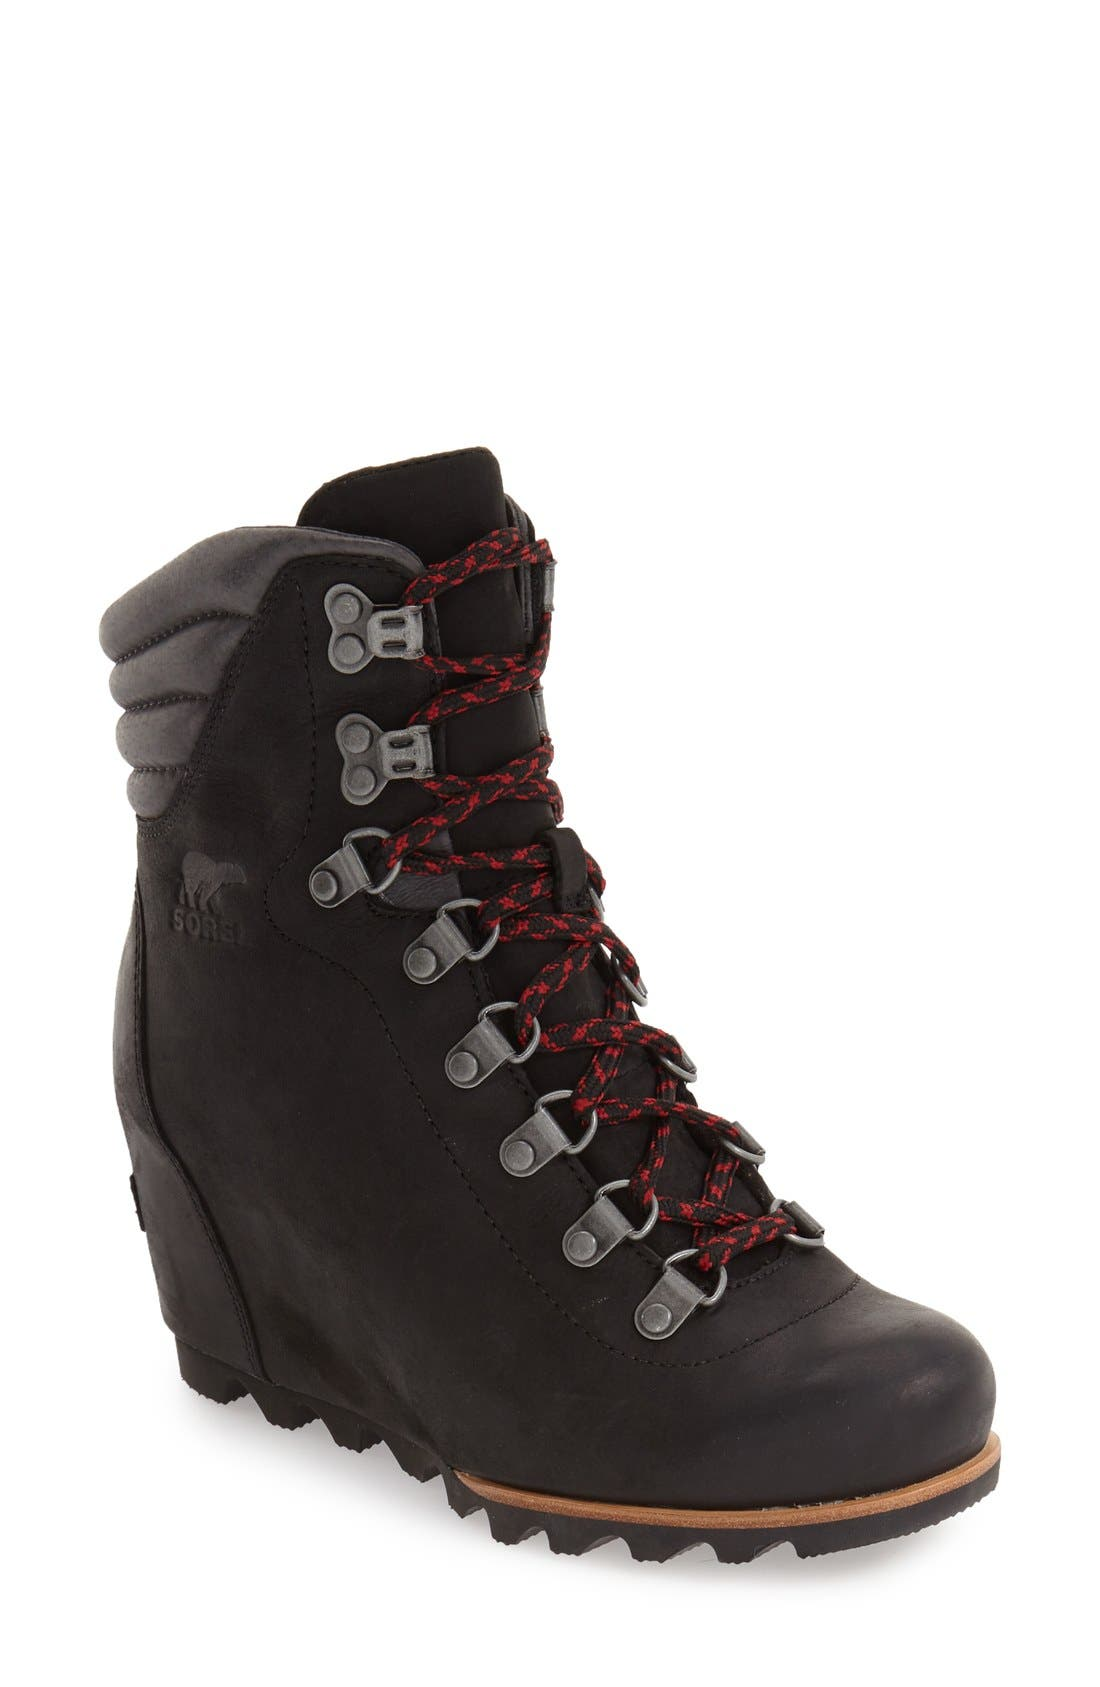 'Conquest' Waterproof Wedge Boot,                         Main,                         color, 010